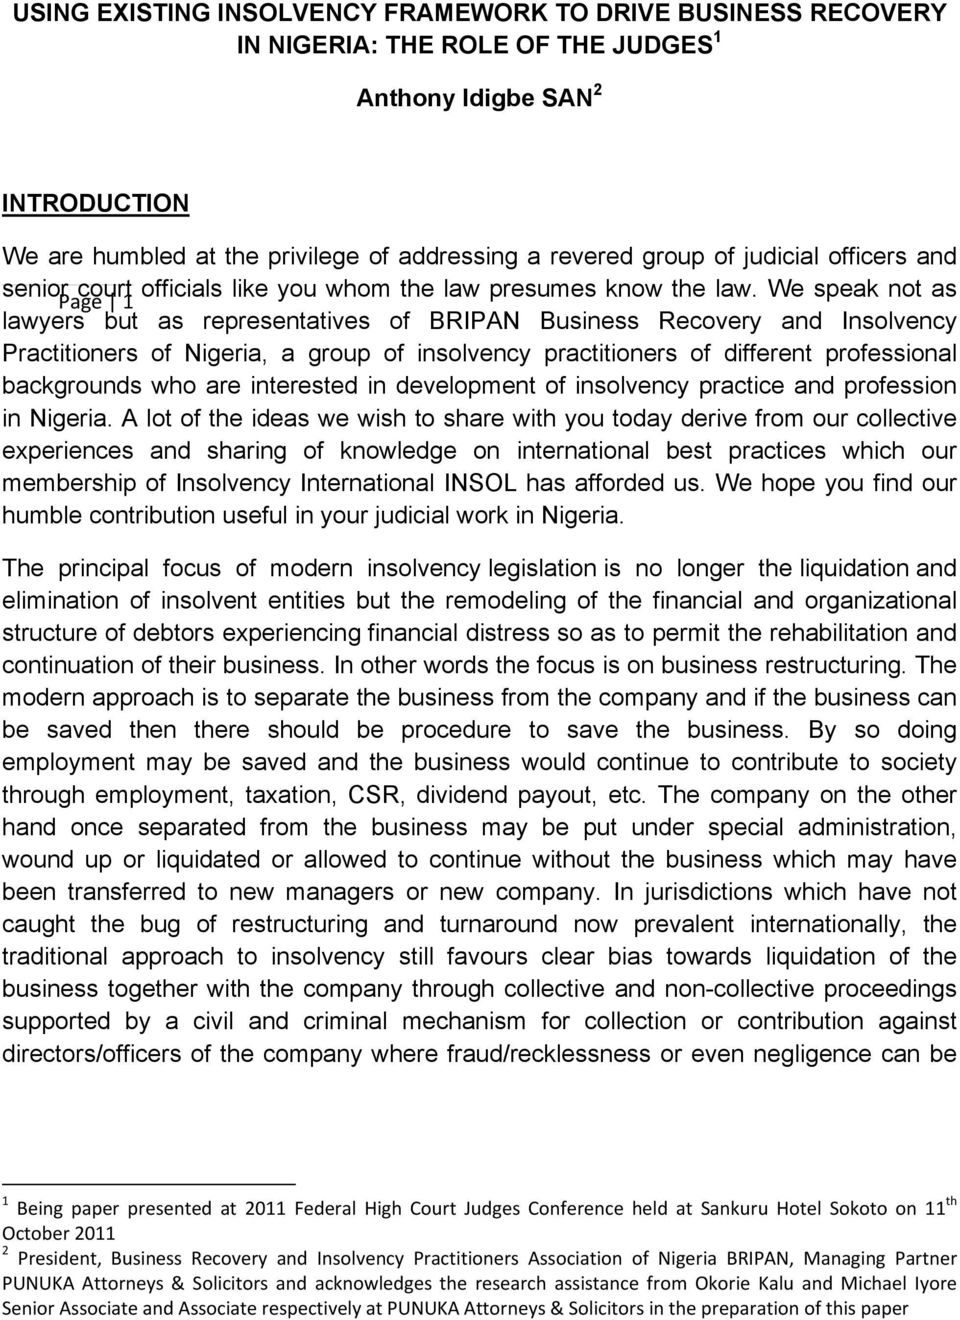 We speak not as Page 1 lawyers but as representatives of BRIPAN Business Recovery and Insolvency Practitioners of Nigeria, a group of insolvency practitioners of different professional backgrounds